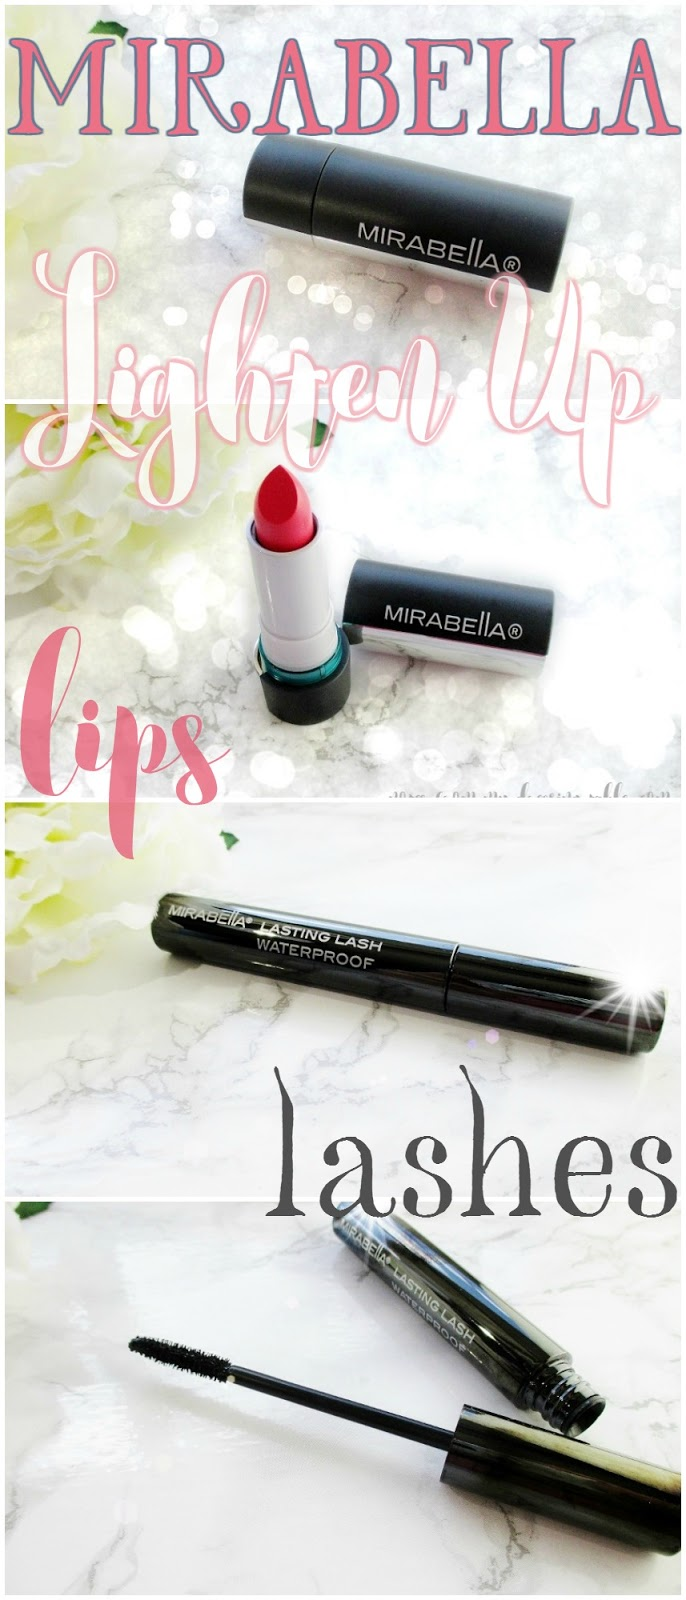 mirabella-lighten-up-colour-vinyl-lipstick-mascara